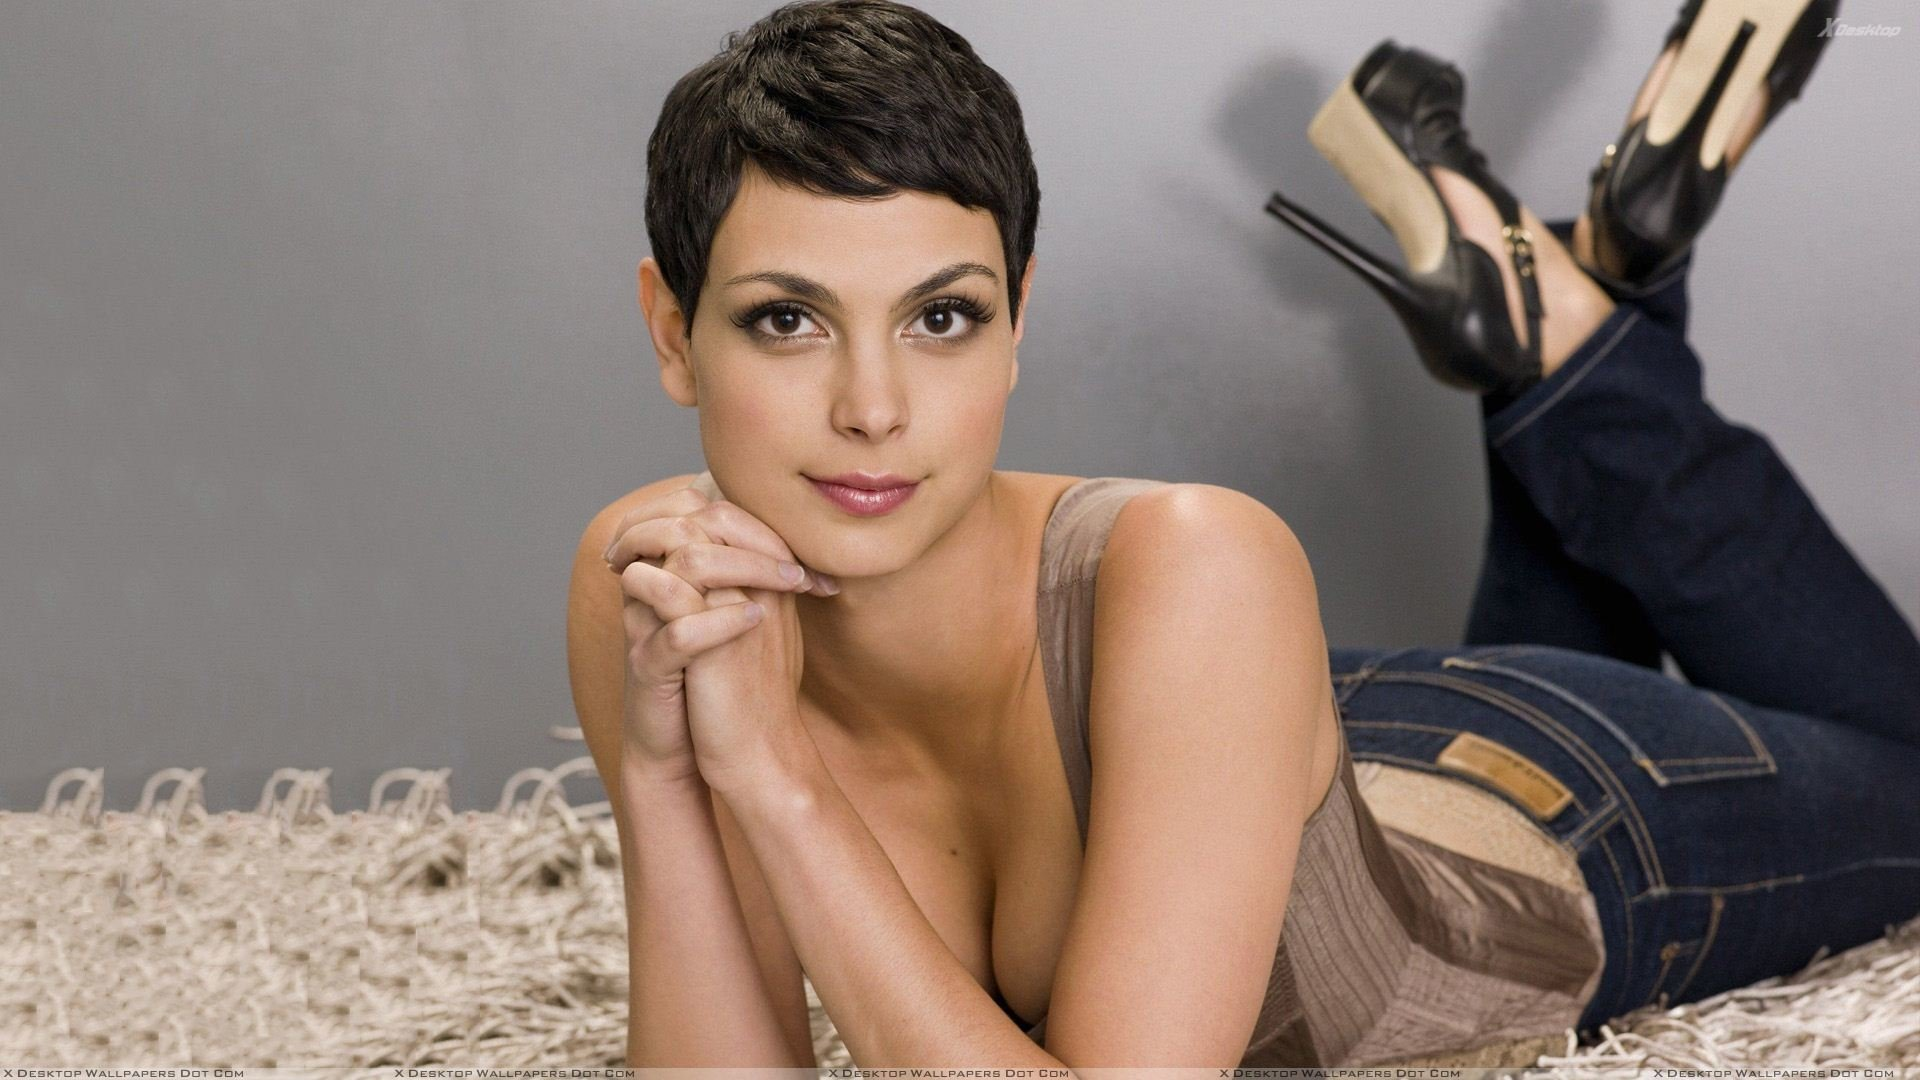 Morena Baccarin Hd Wallpaper  Background Image  1920X1080  Id647166 - Wallpaper Abyss-7480